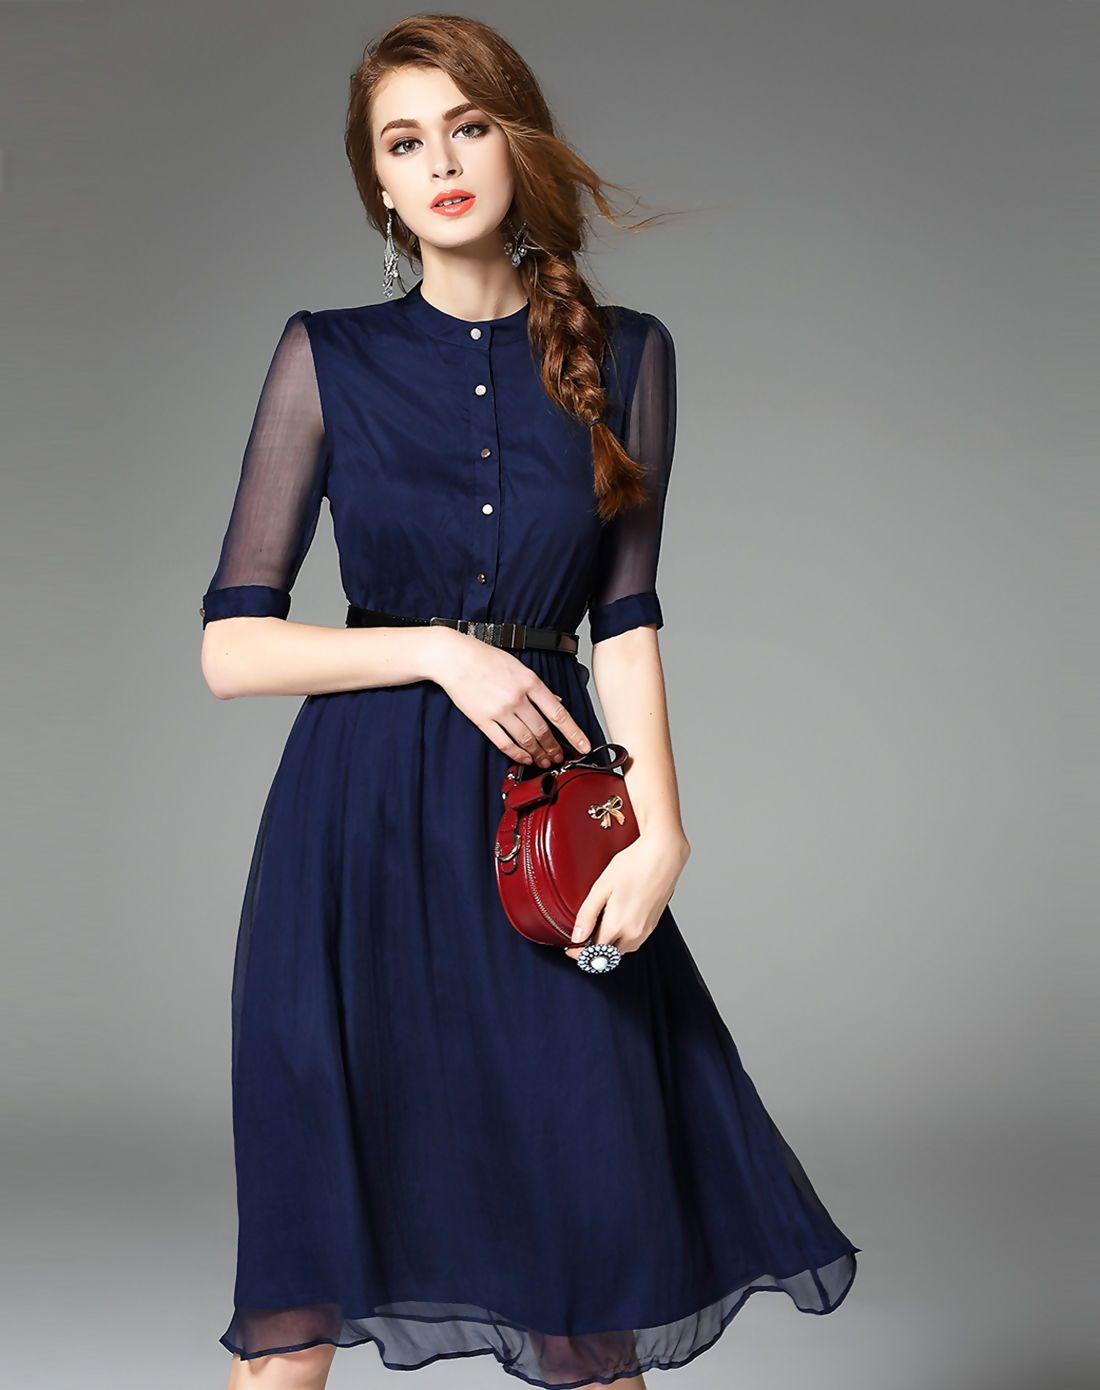 AdoreWe  VIPme Skater Dresses - Ewheat Summer Navy Blue Silk Half Sleeve  Belted Midi Dress - AdoreWe.com 943977e2f583